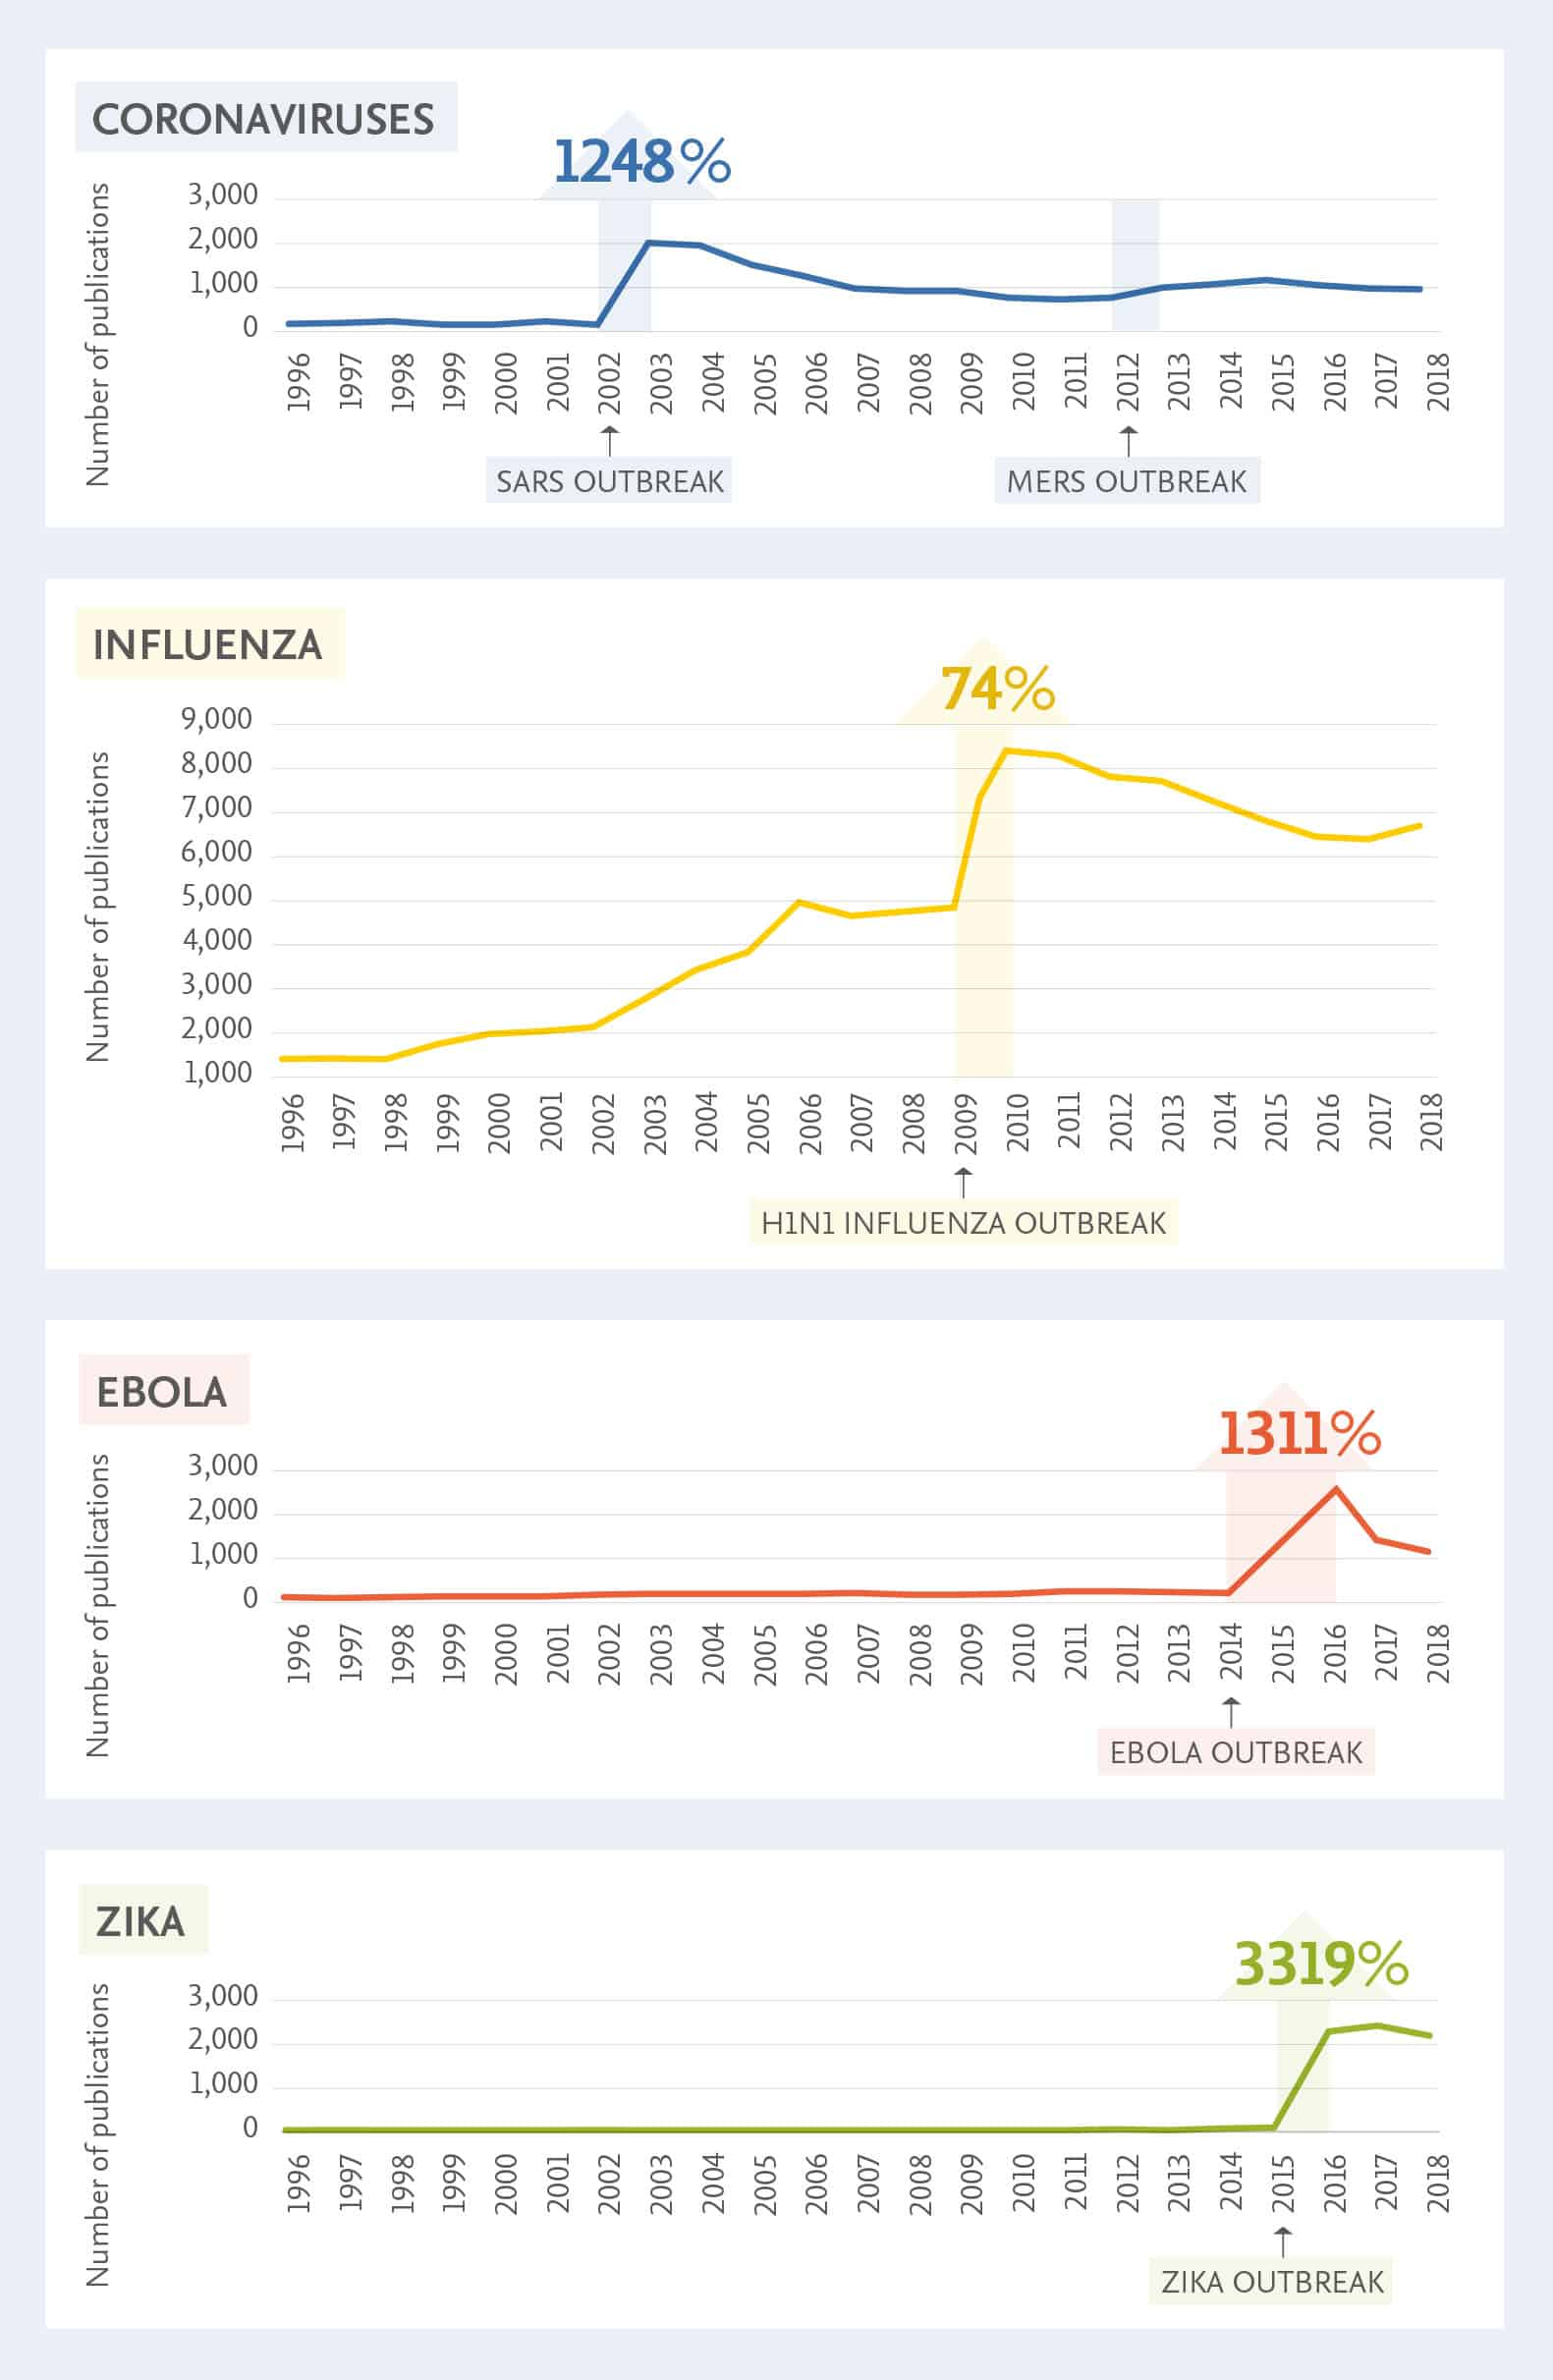 Following an outbreak of disease, we see a sharp spike in disease-specific publications, showcasing the research community's ability to quickly respond to public health needs. (Source: Elsevier infographic based on data from Scopus and Scival)